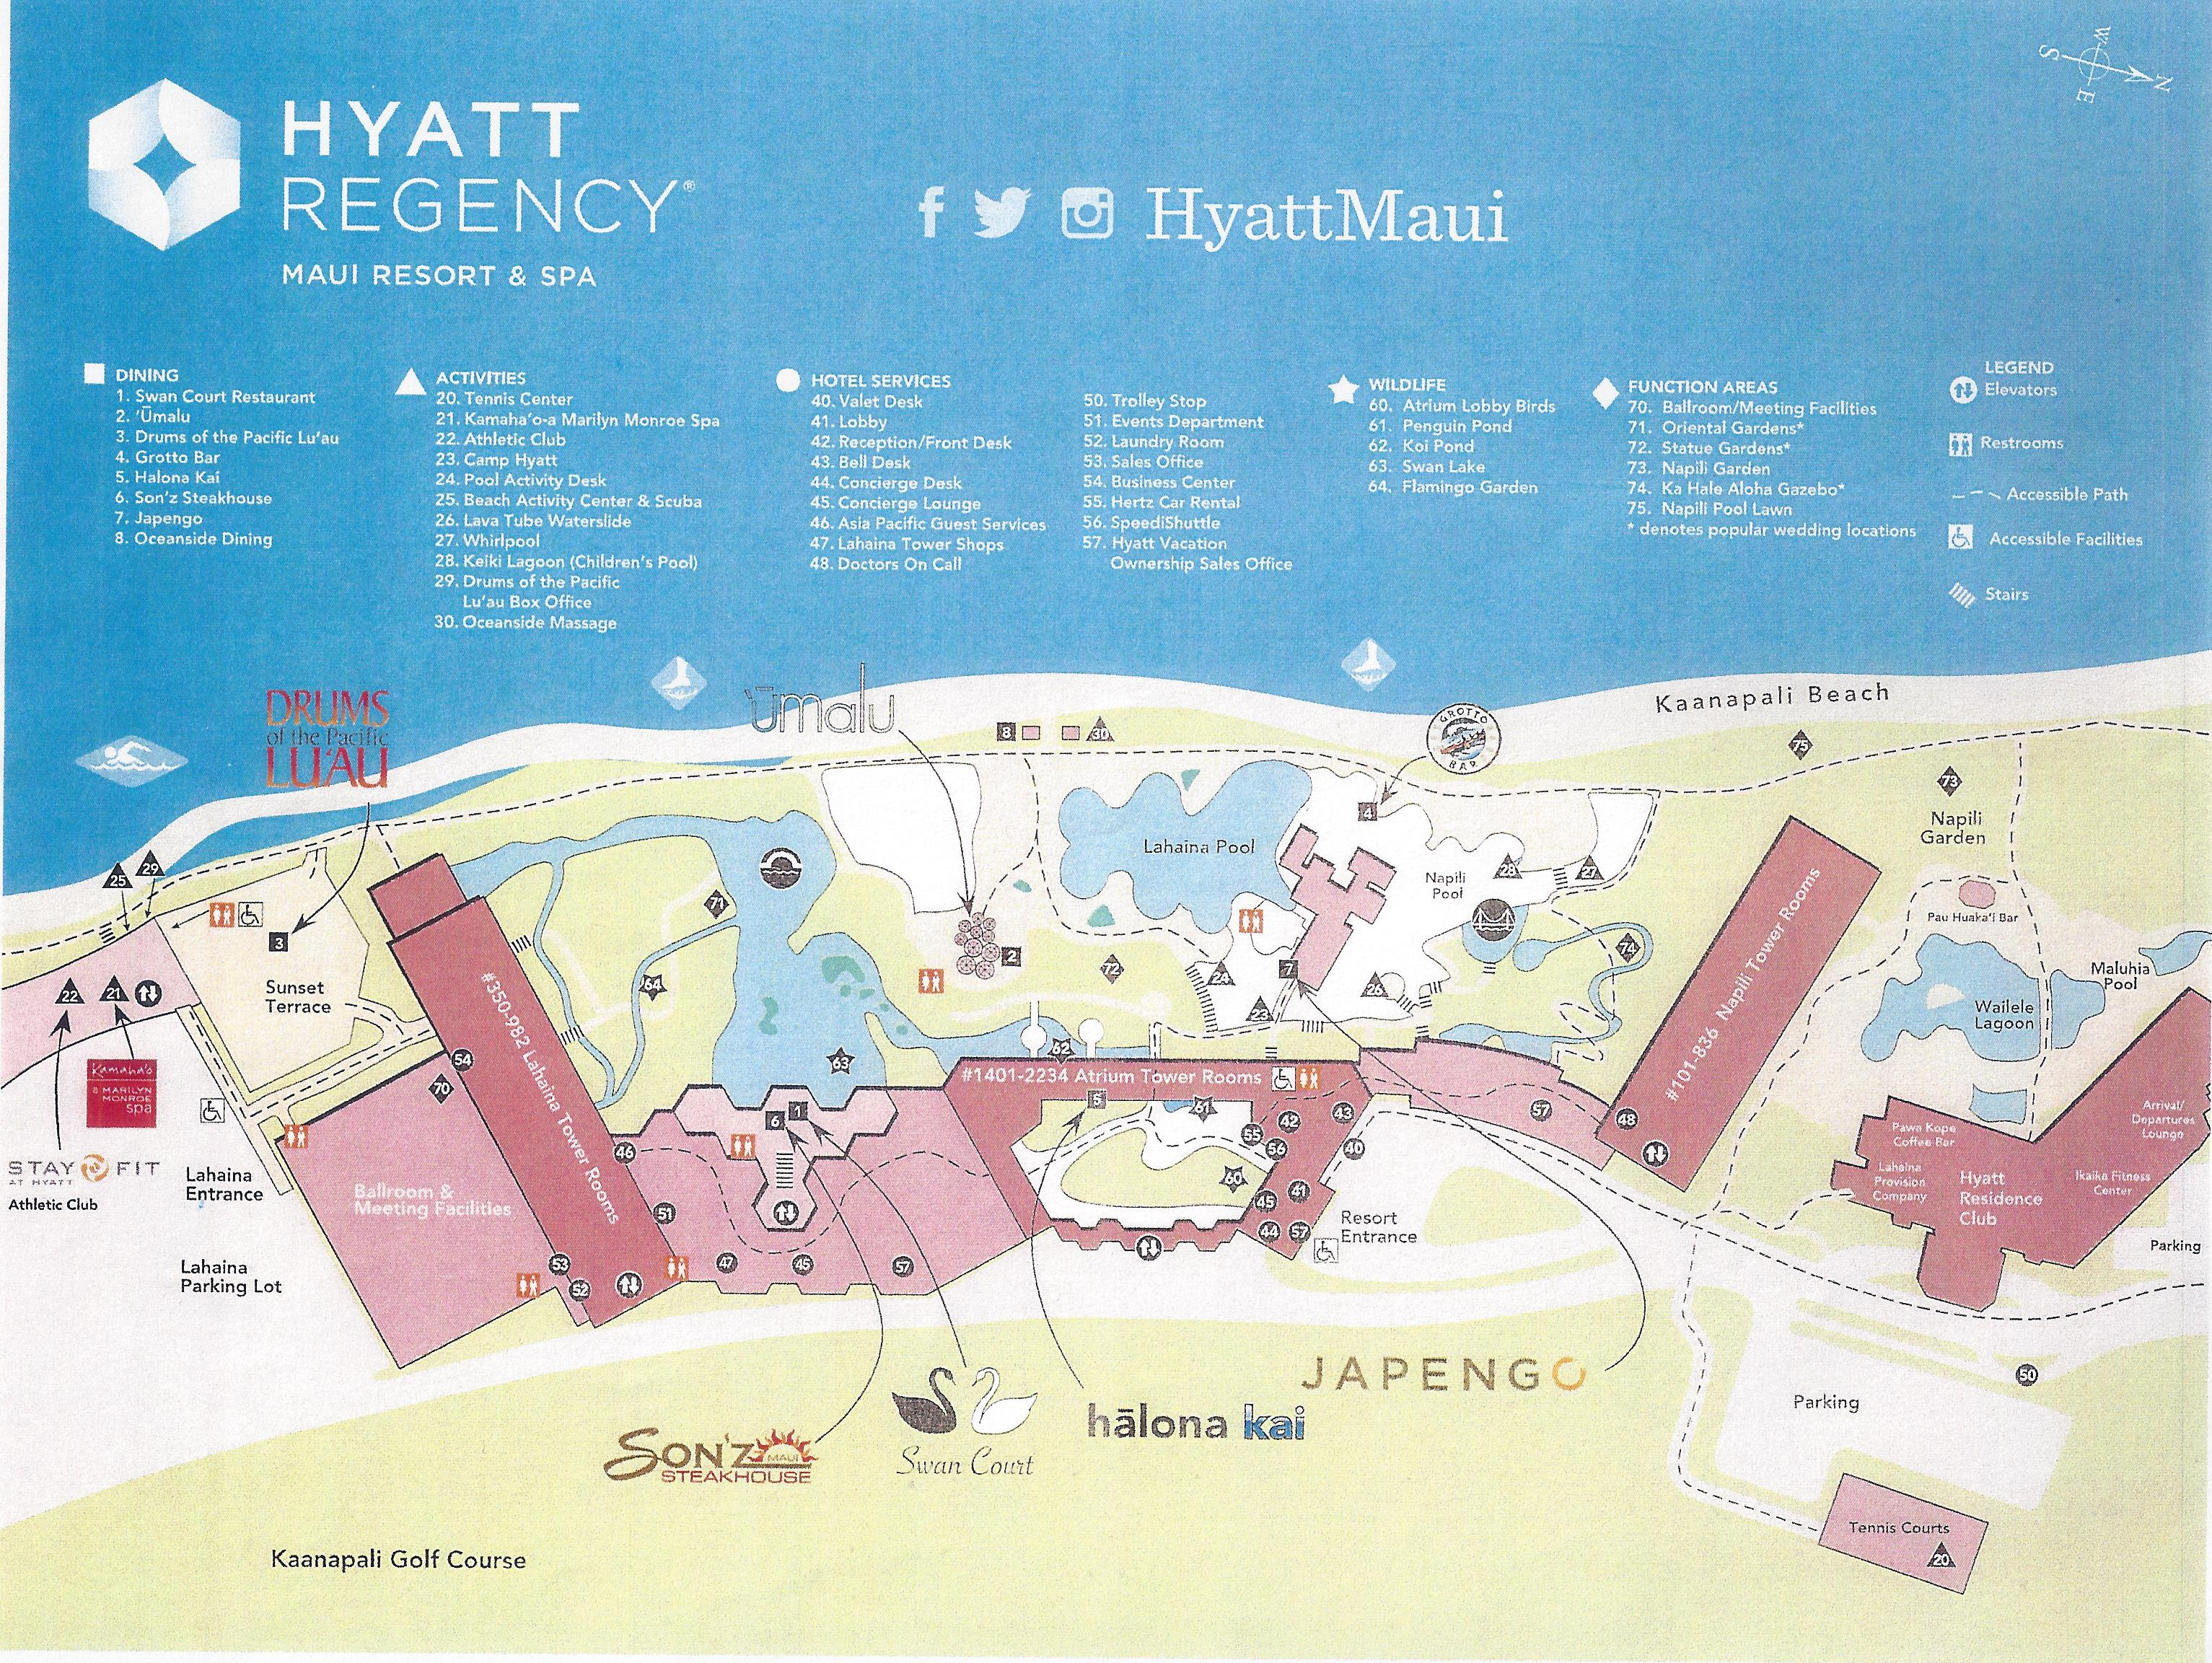 TUG Hyatt Regency Maui Resort Spa – Maui Tourist Attractions Map